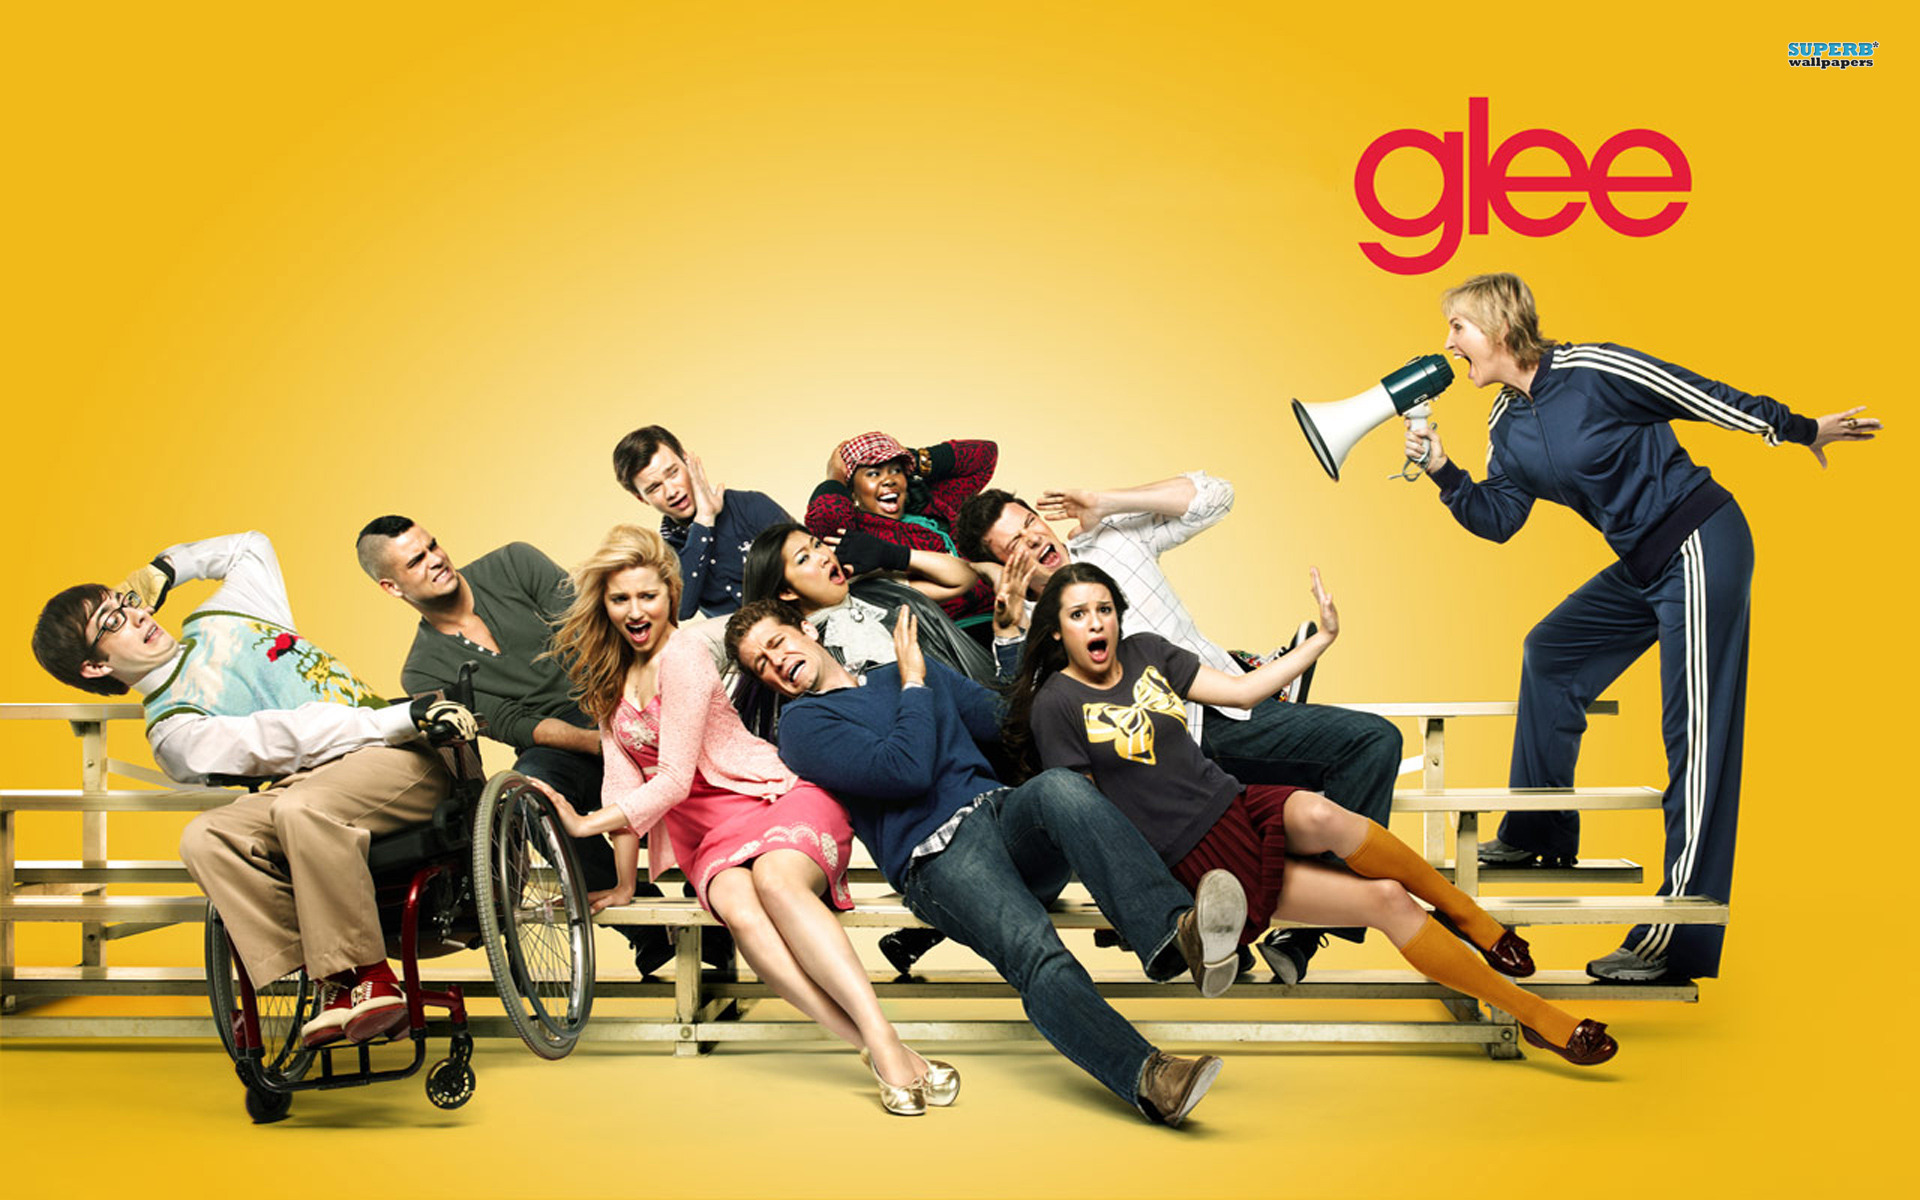 Glee pictures wallpaper 1920x1200 6176 glee pictures voltagebd Image collections